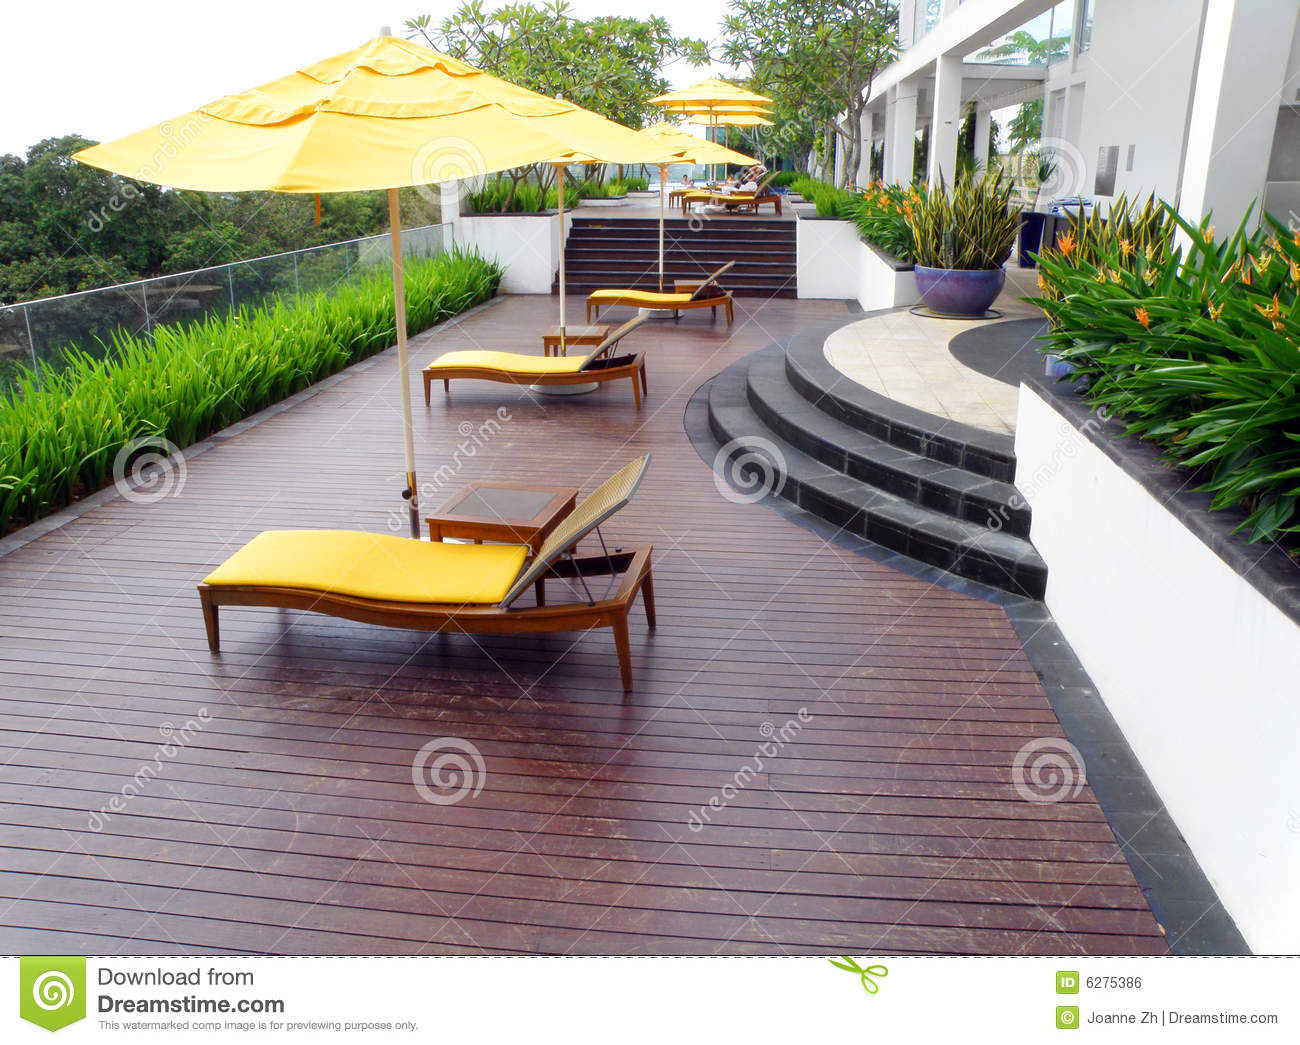 Roof top garden design royalty free stock image image for Top garden designers